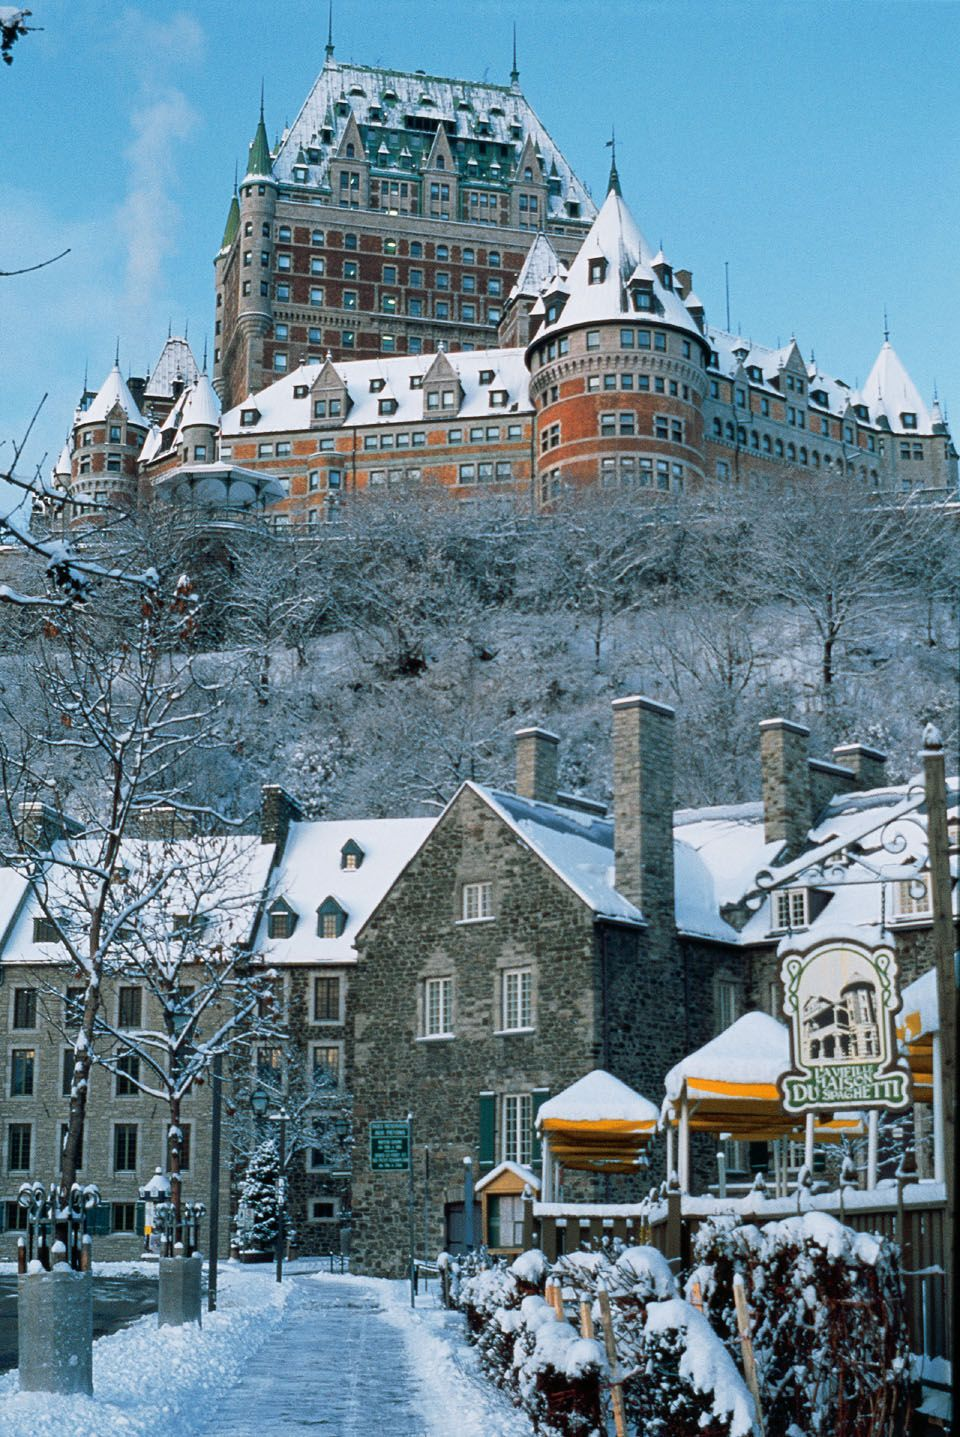 Travelling to Quebec? This must be the place!